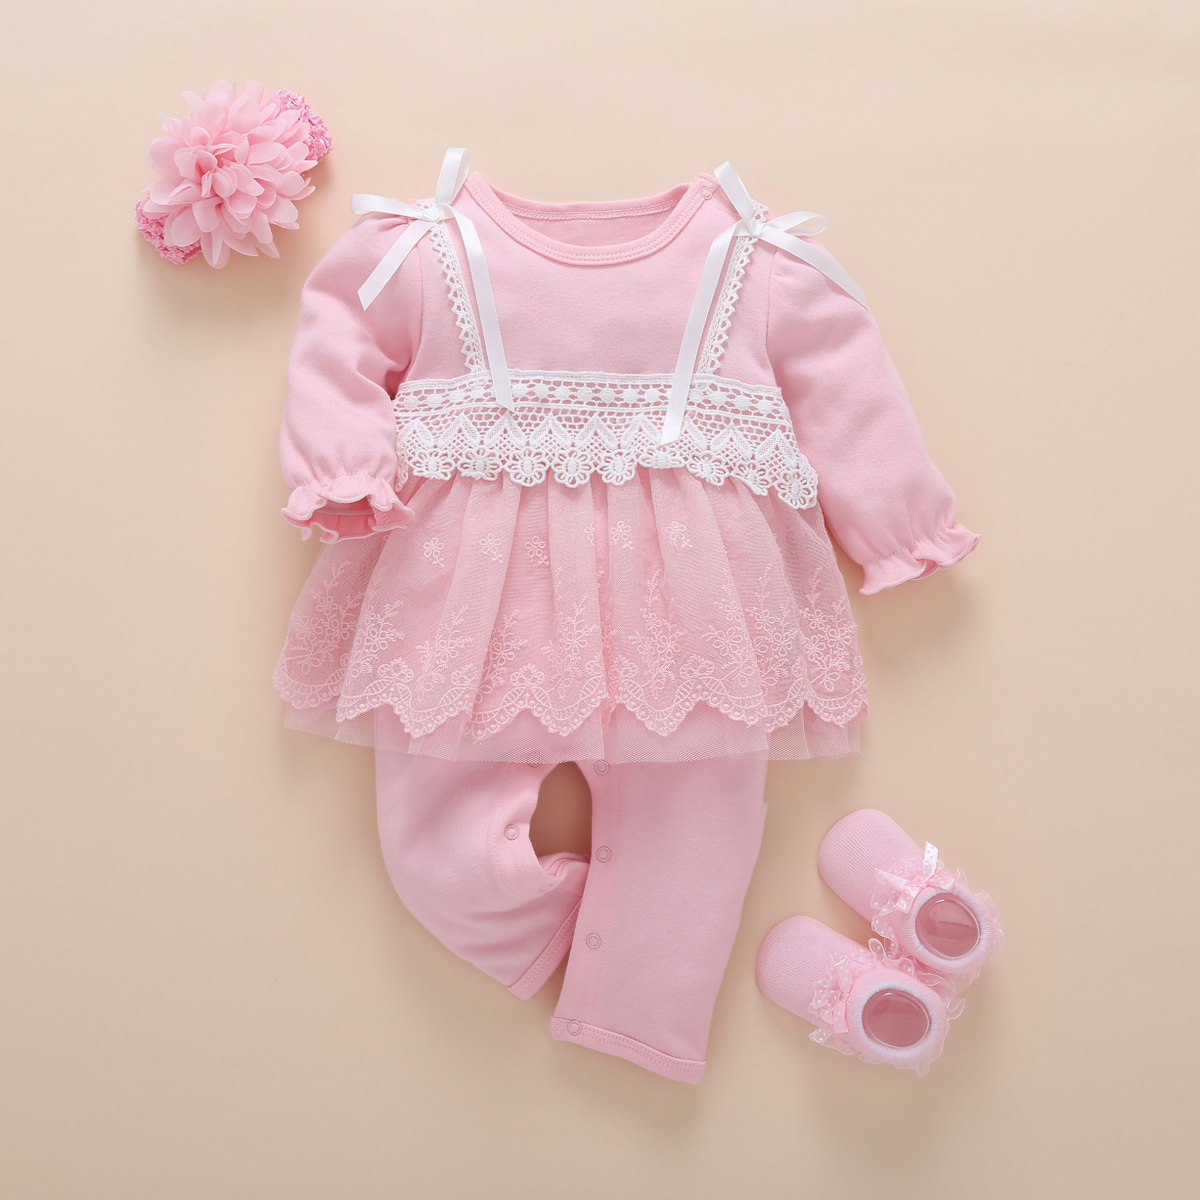 new born baby clothes long sleeved princess baby girl romper autumn spring lace children jumpsuit+headband+socks toddler set 3m